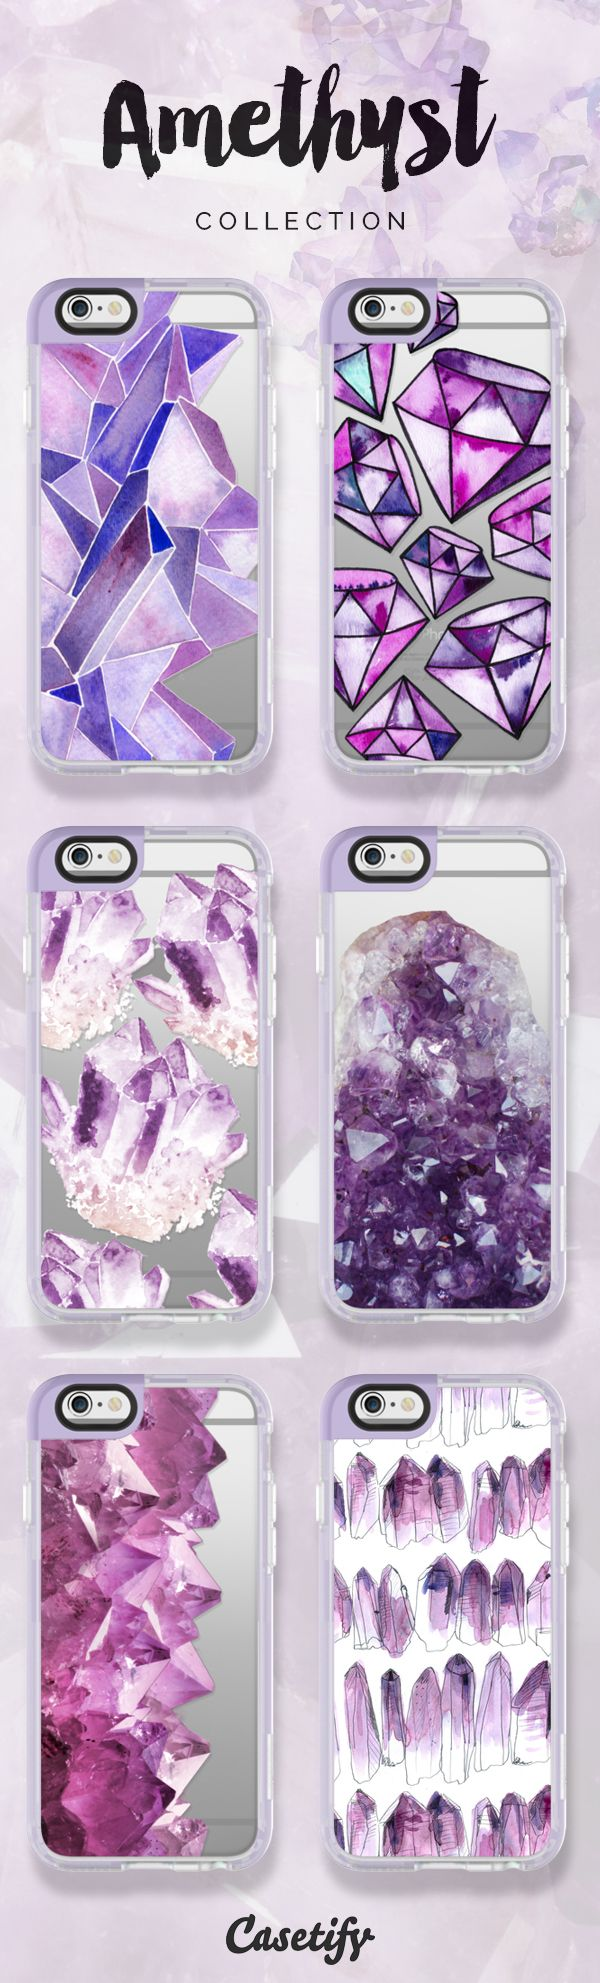 We are all about these #amethyst designs! Shop them here >>> https://www.casetify.com/artworks/RMRuKhx4jR | @casetify